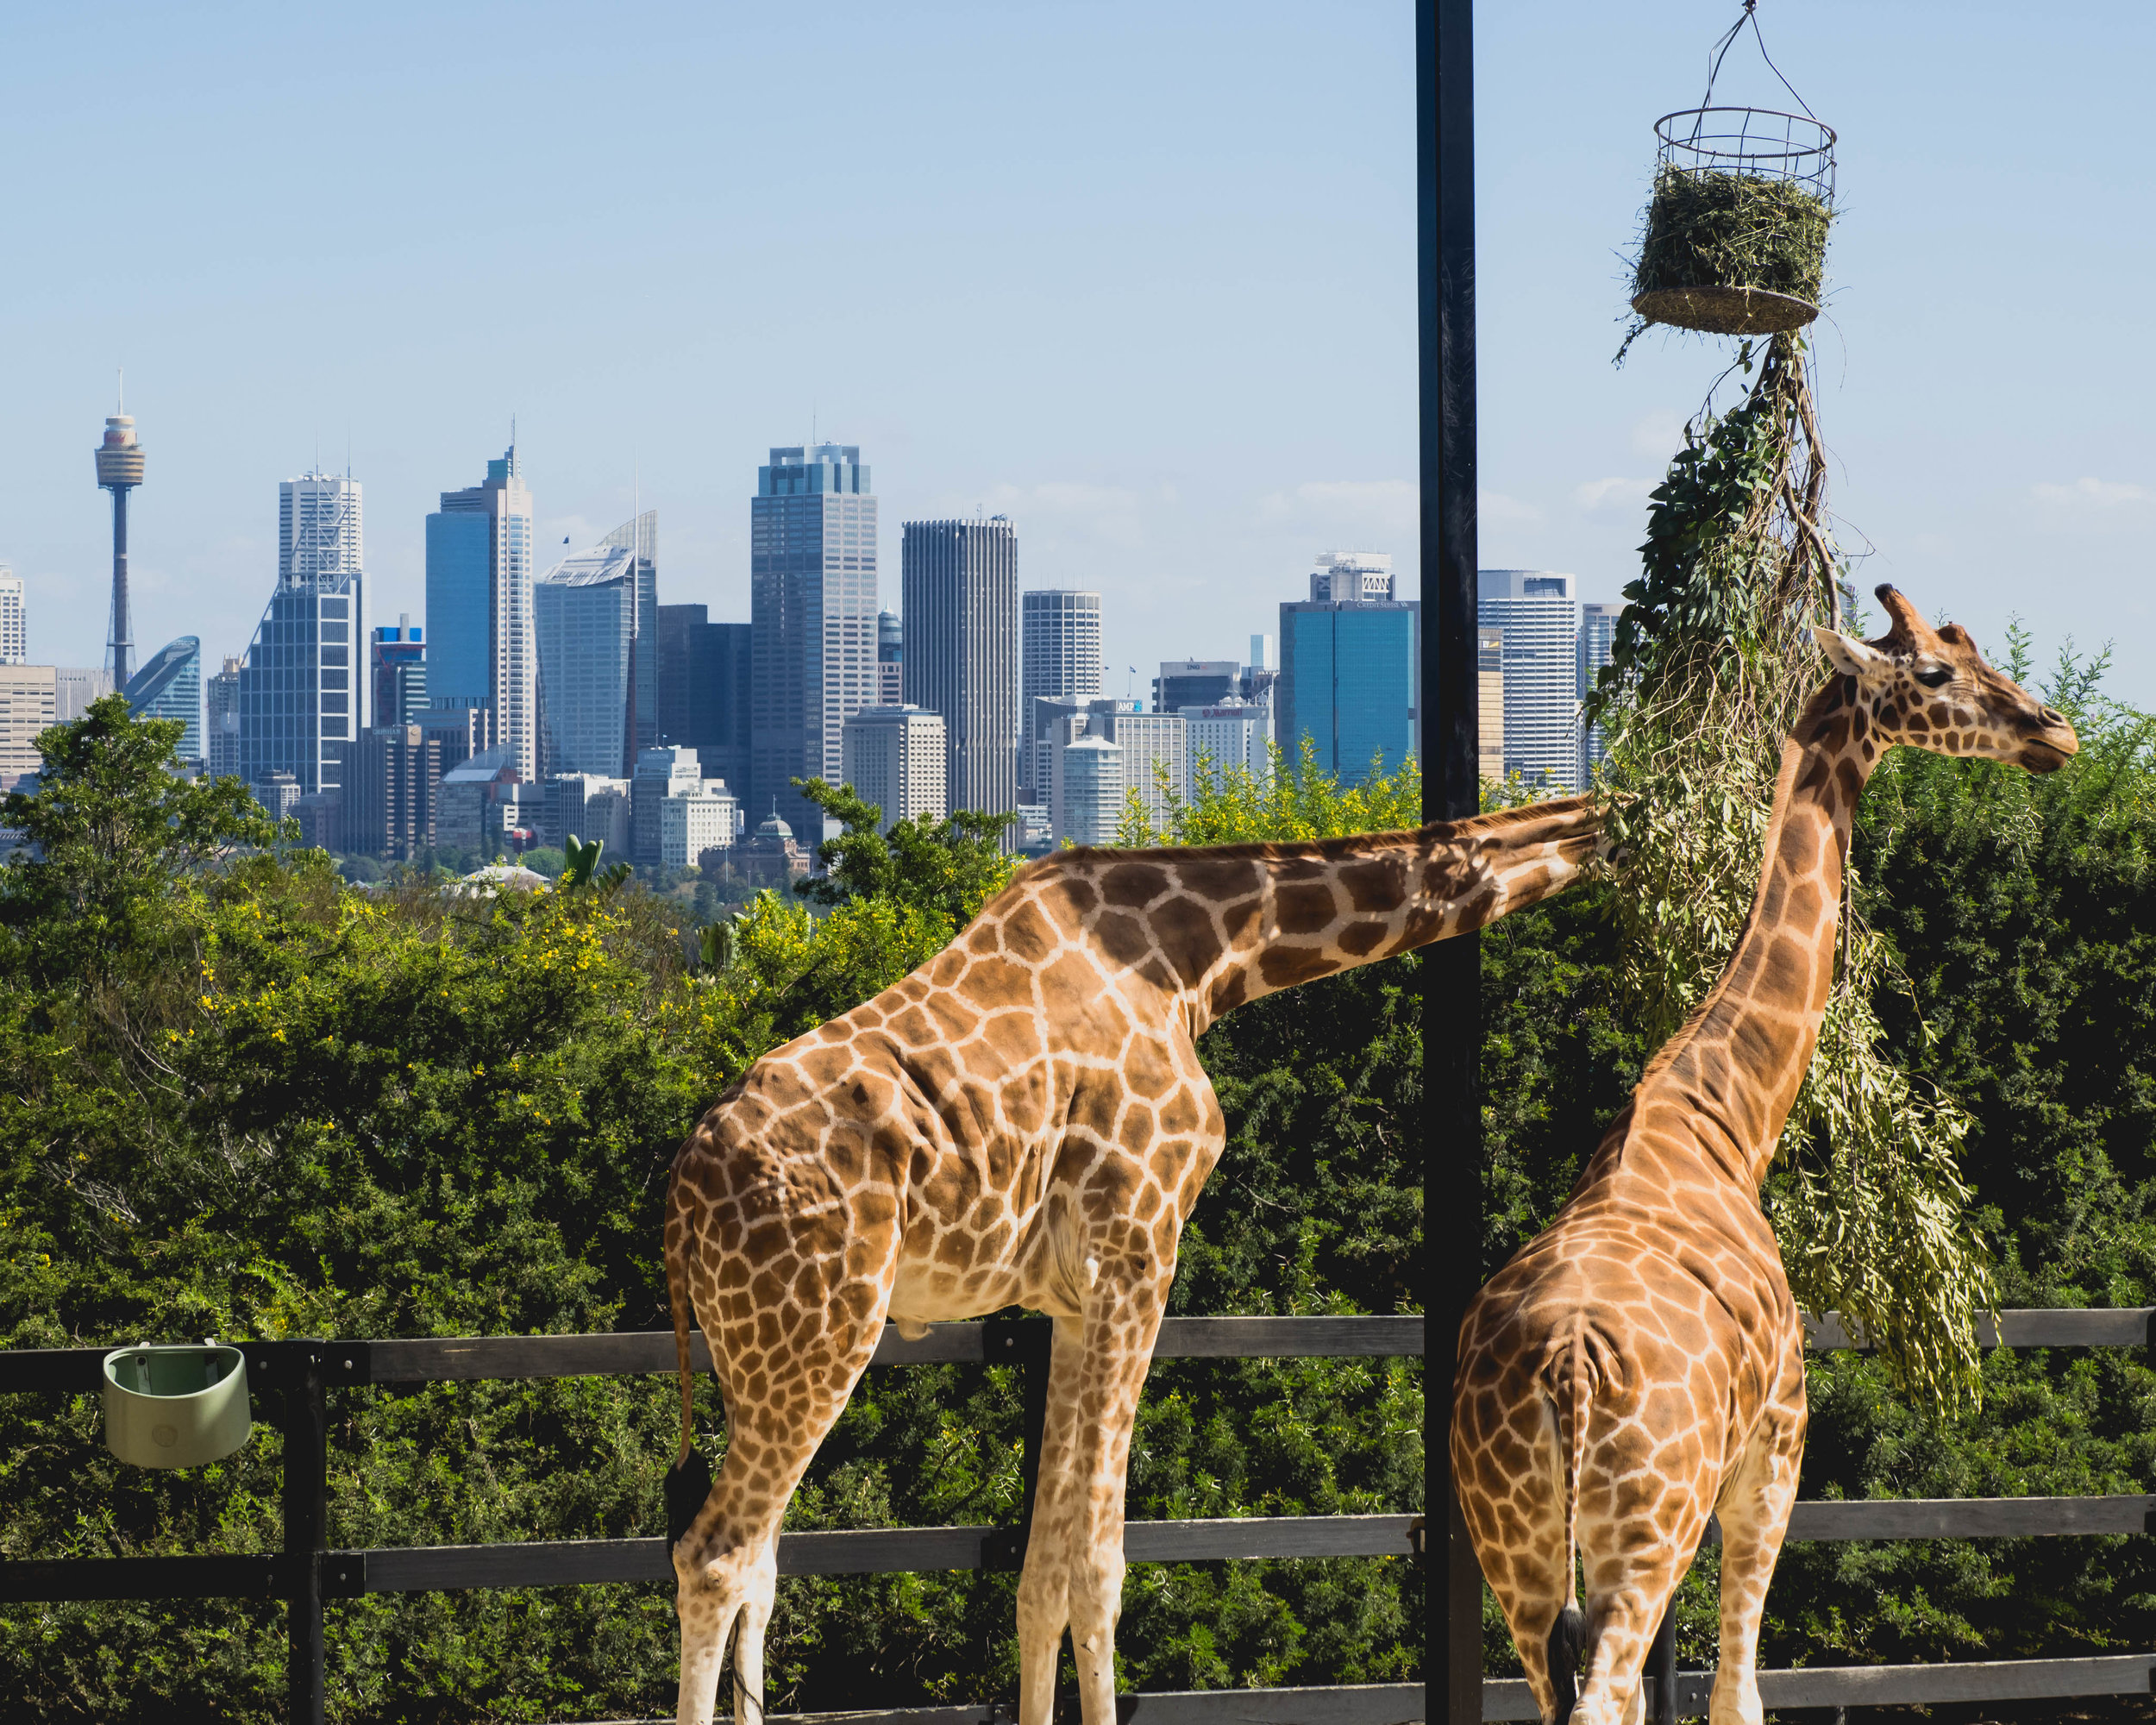 giraffes with a view.